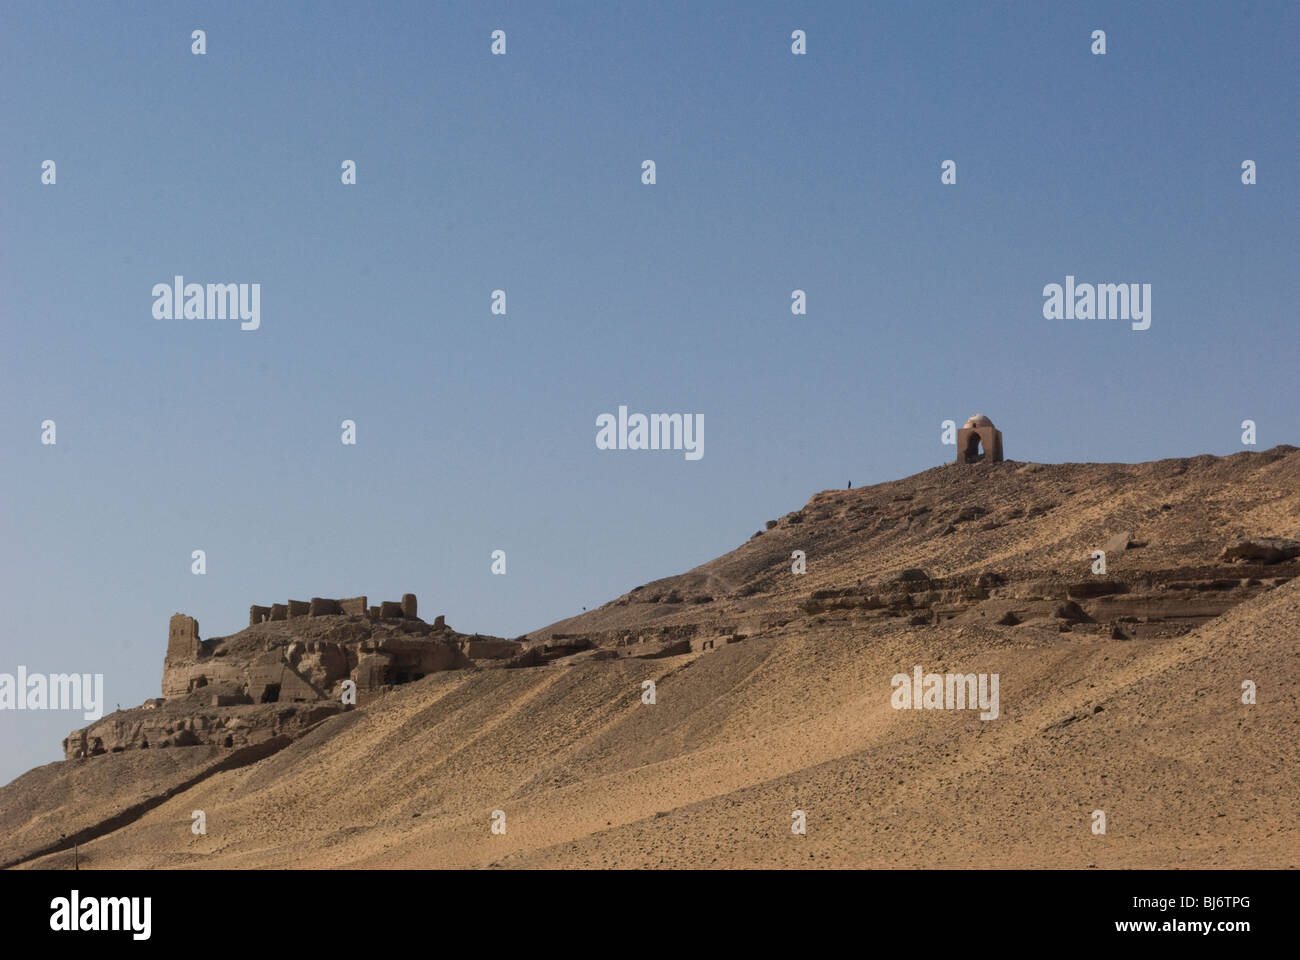 A hillside overlooking the Nile River near Aswan, Egypt,Africa. - Stock Image